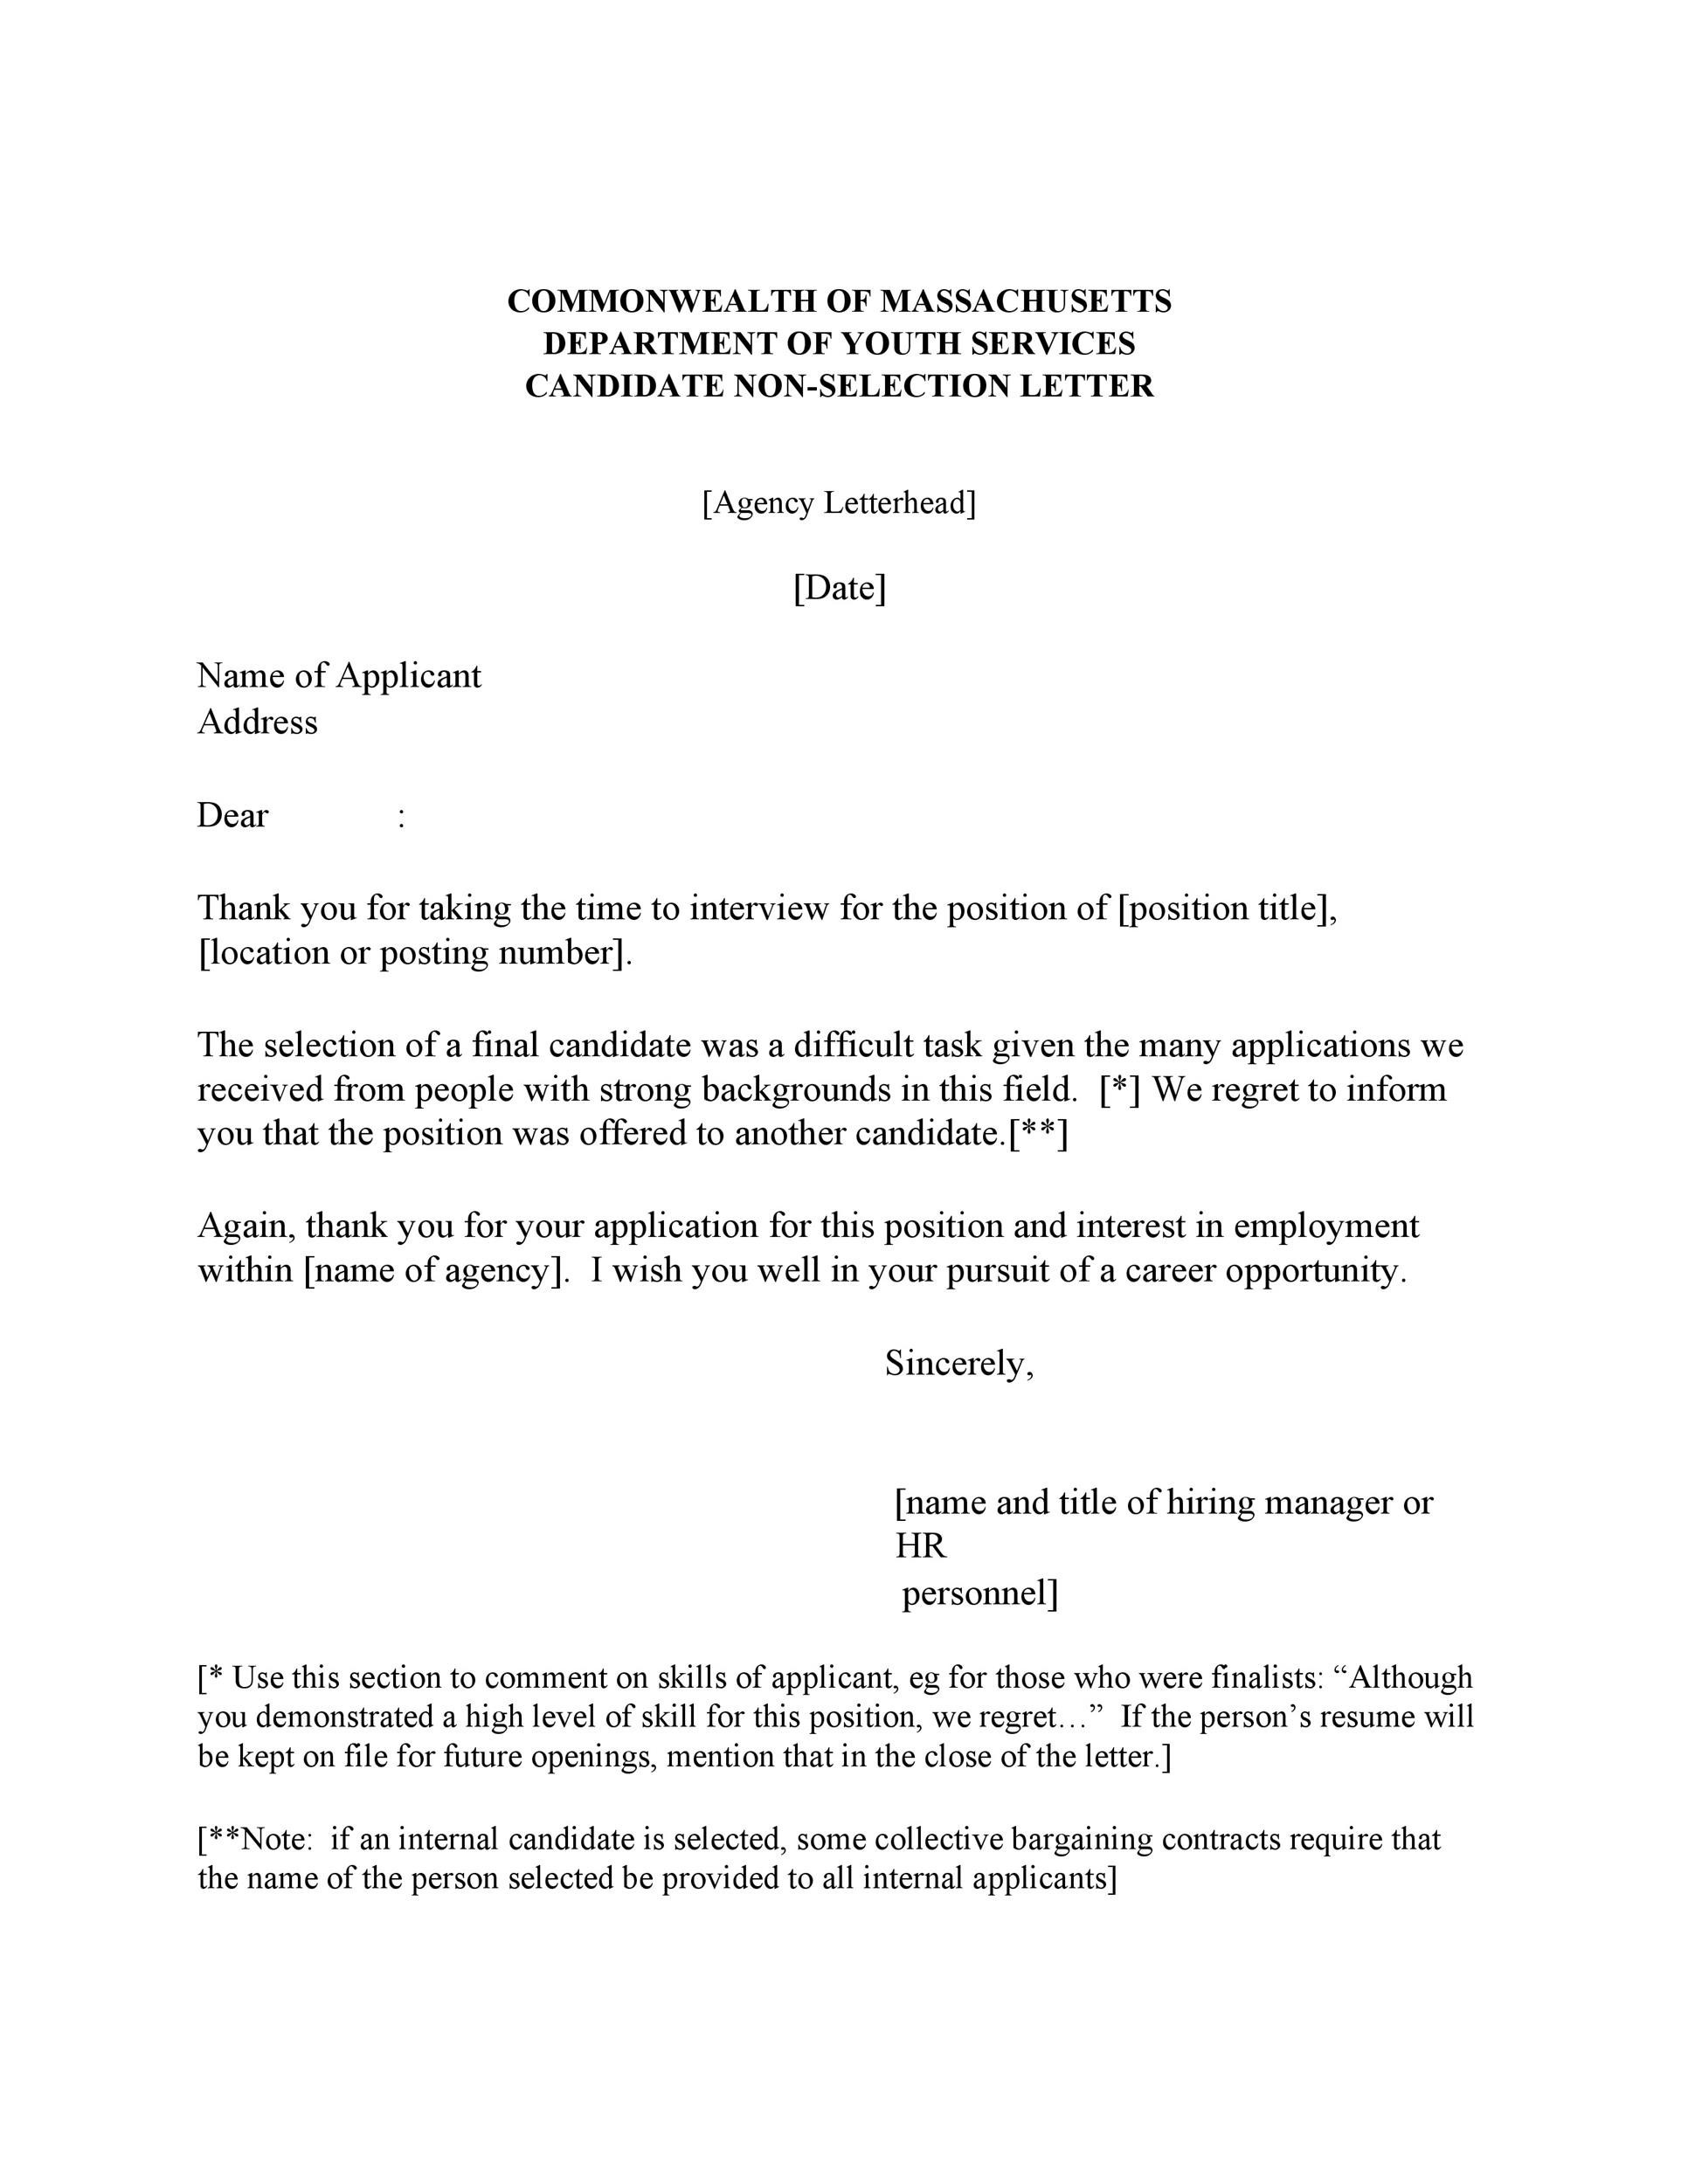 No Interview Rejection Letter from templatelab.com